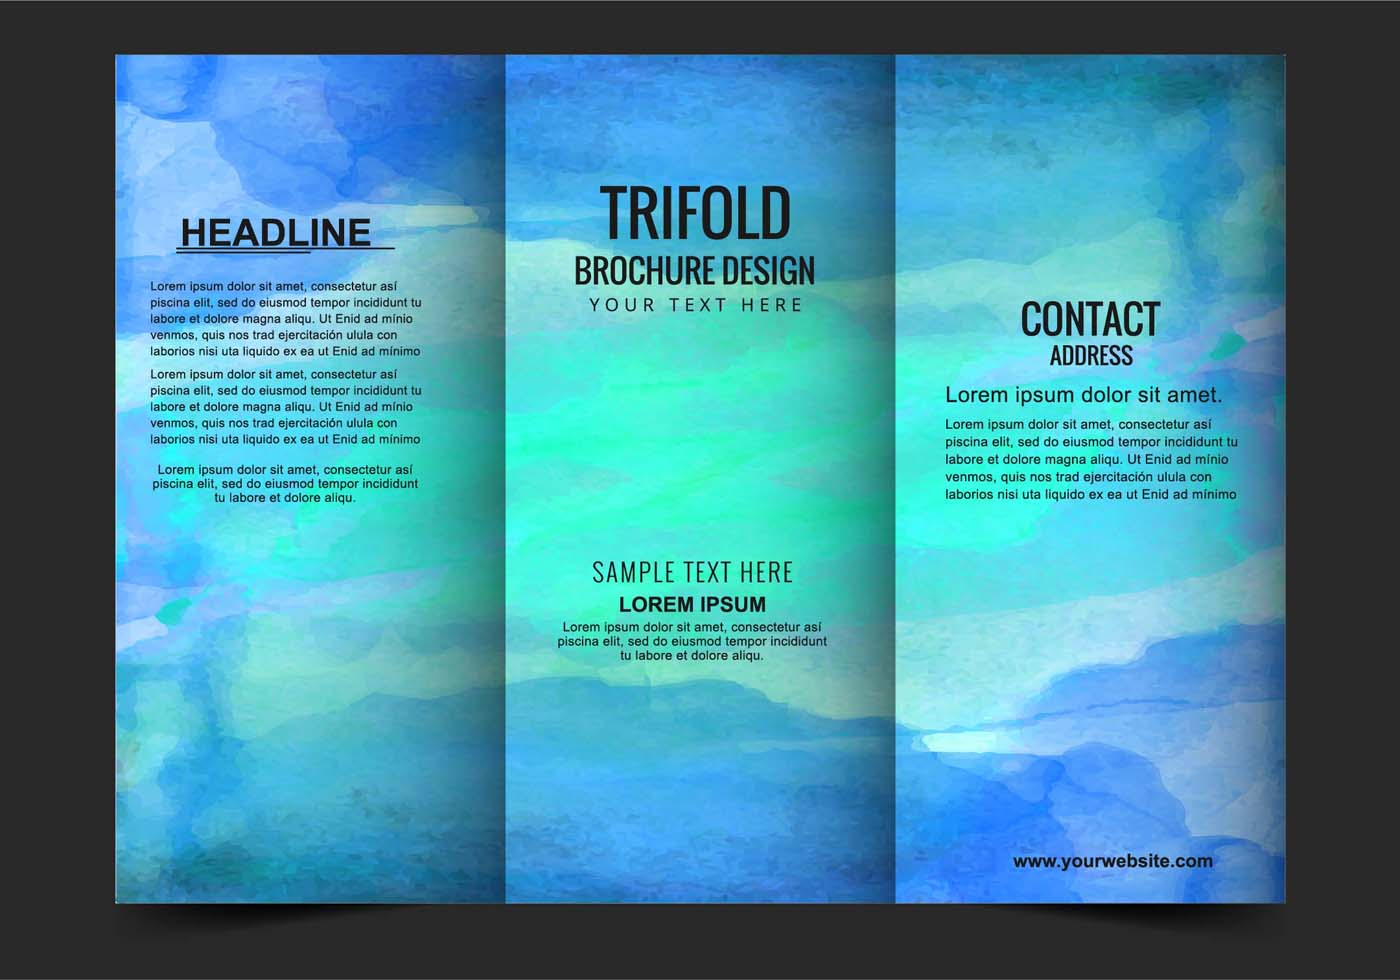 online brochure template free - vector modern trifold brochure template download free